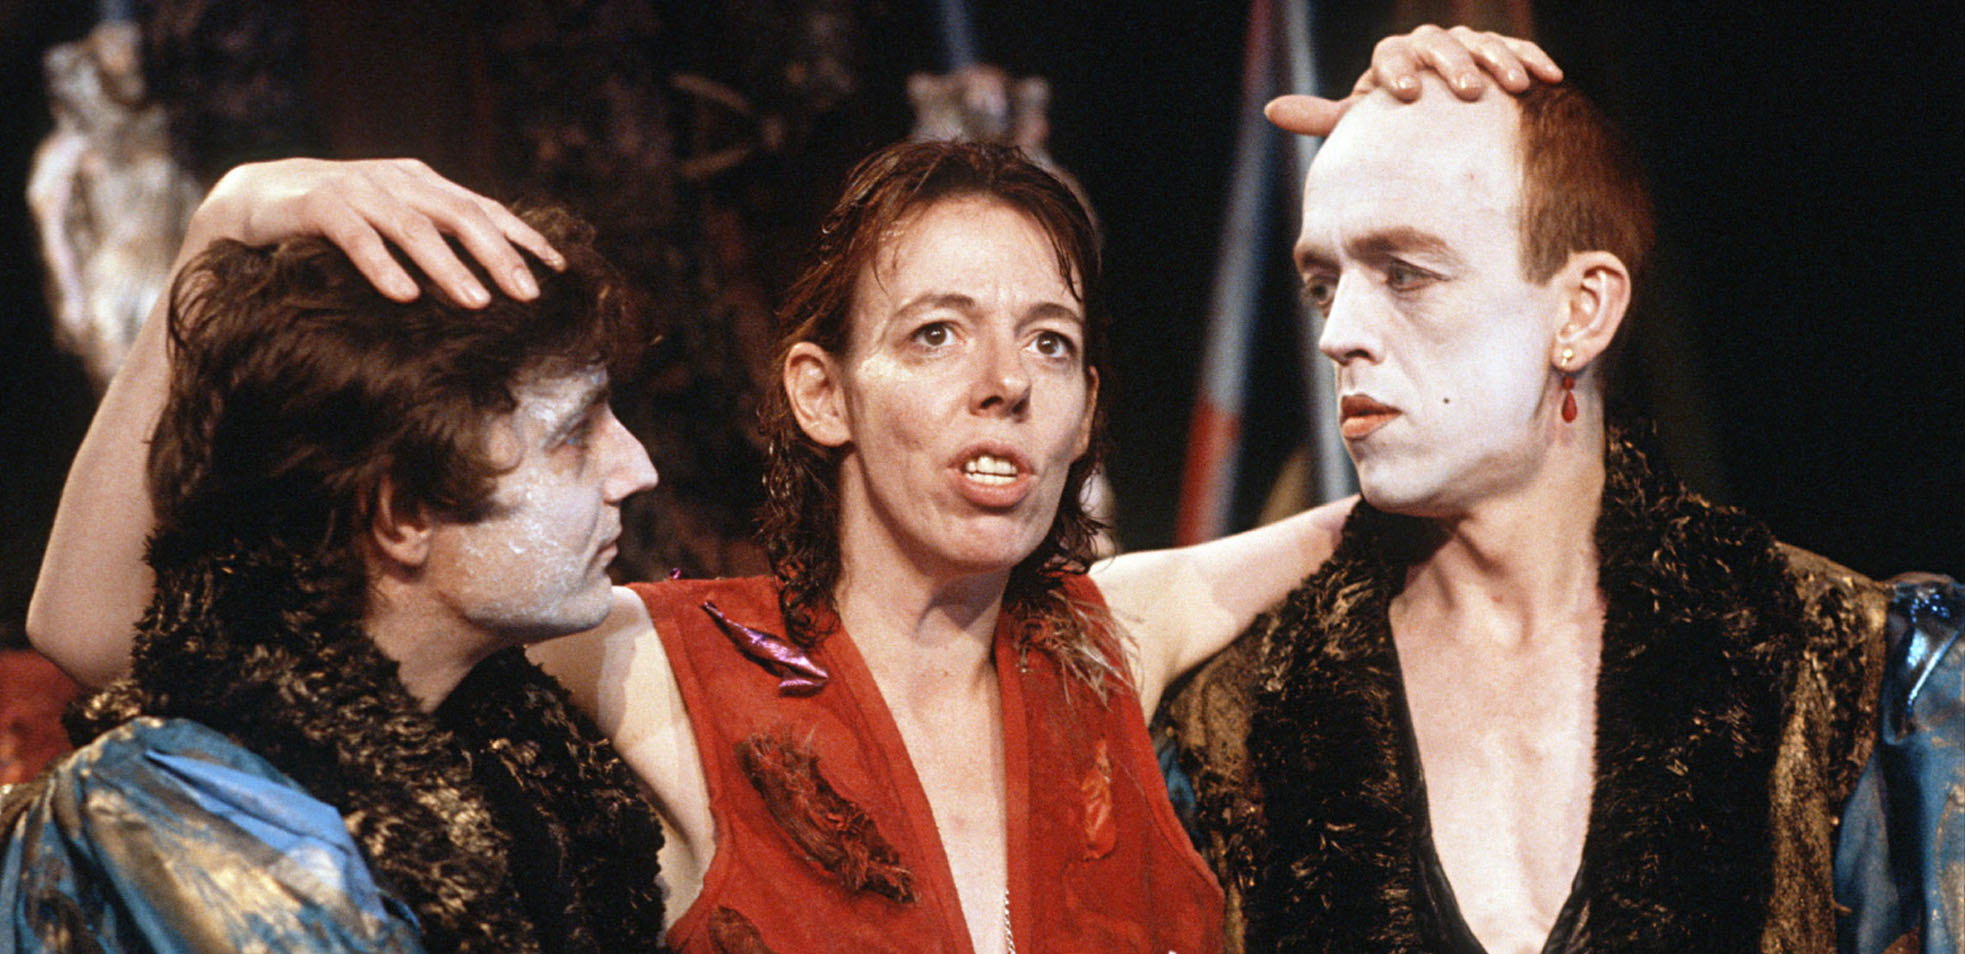 Hamlet (1987), photo by Donald Cooper, www.photostage.co.uk